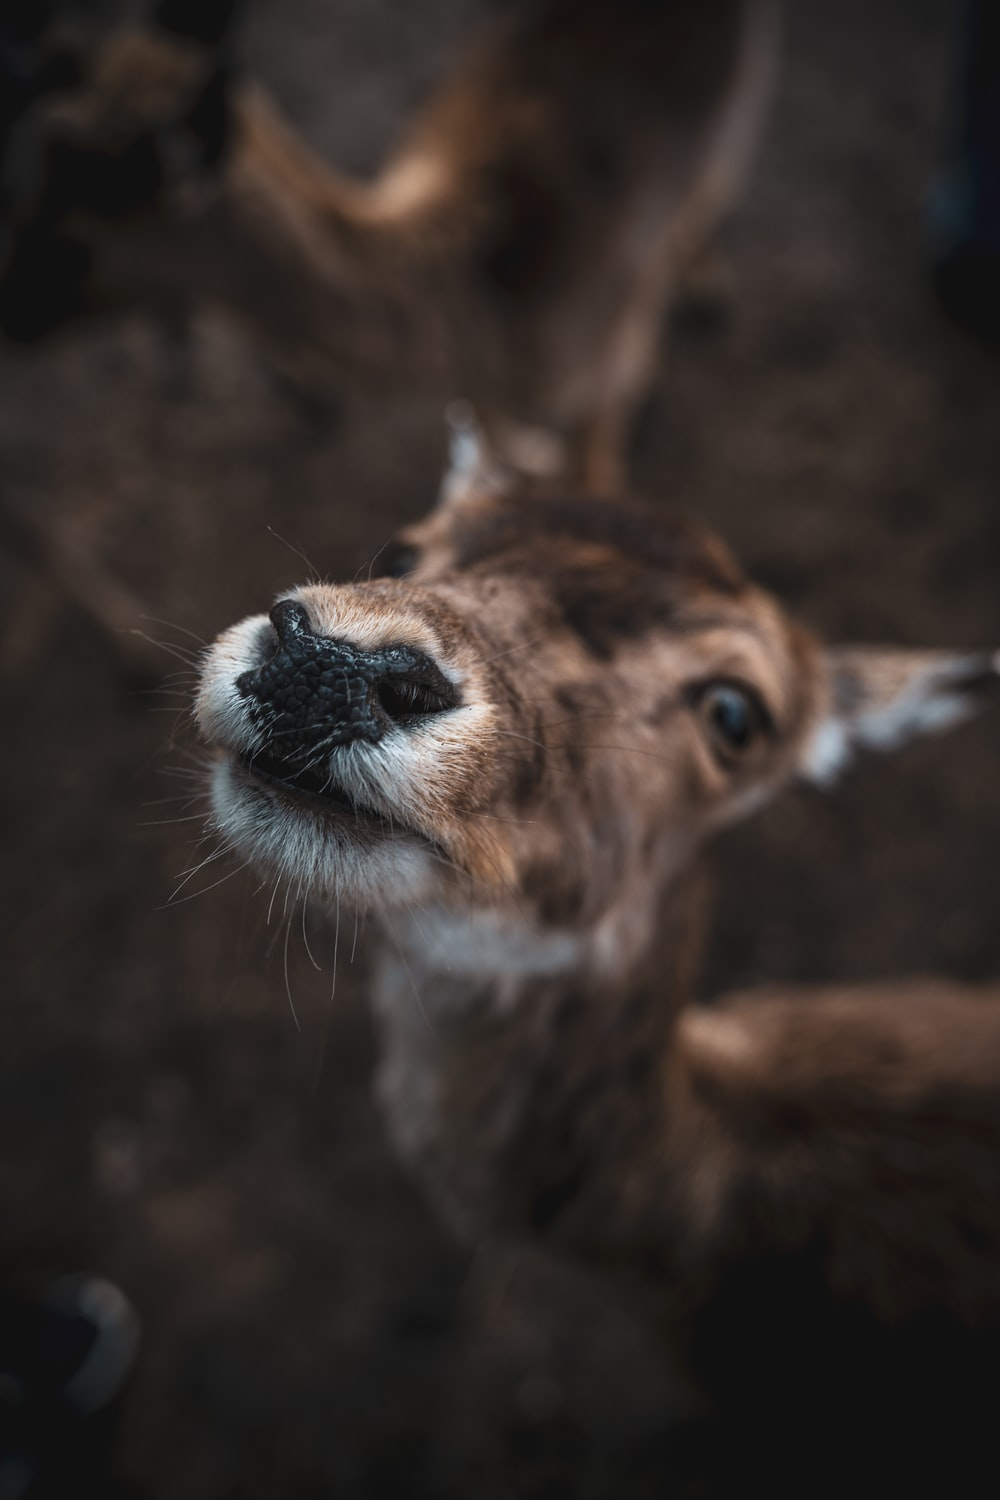 brown and white deer in close up photography